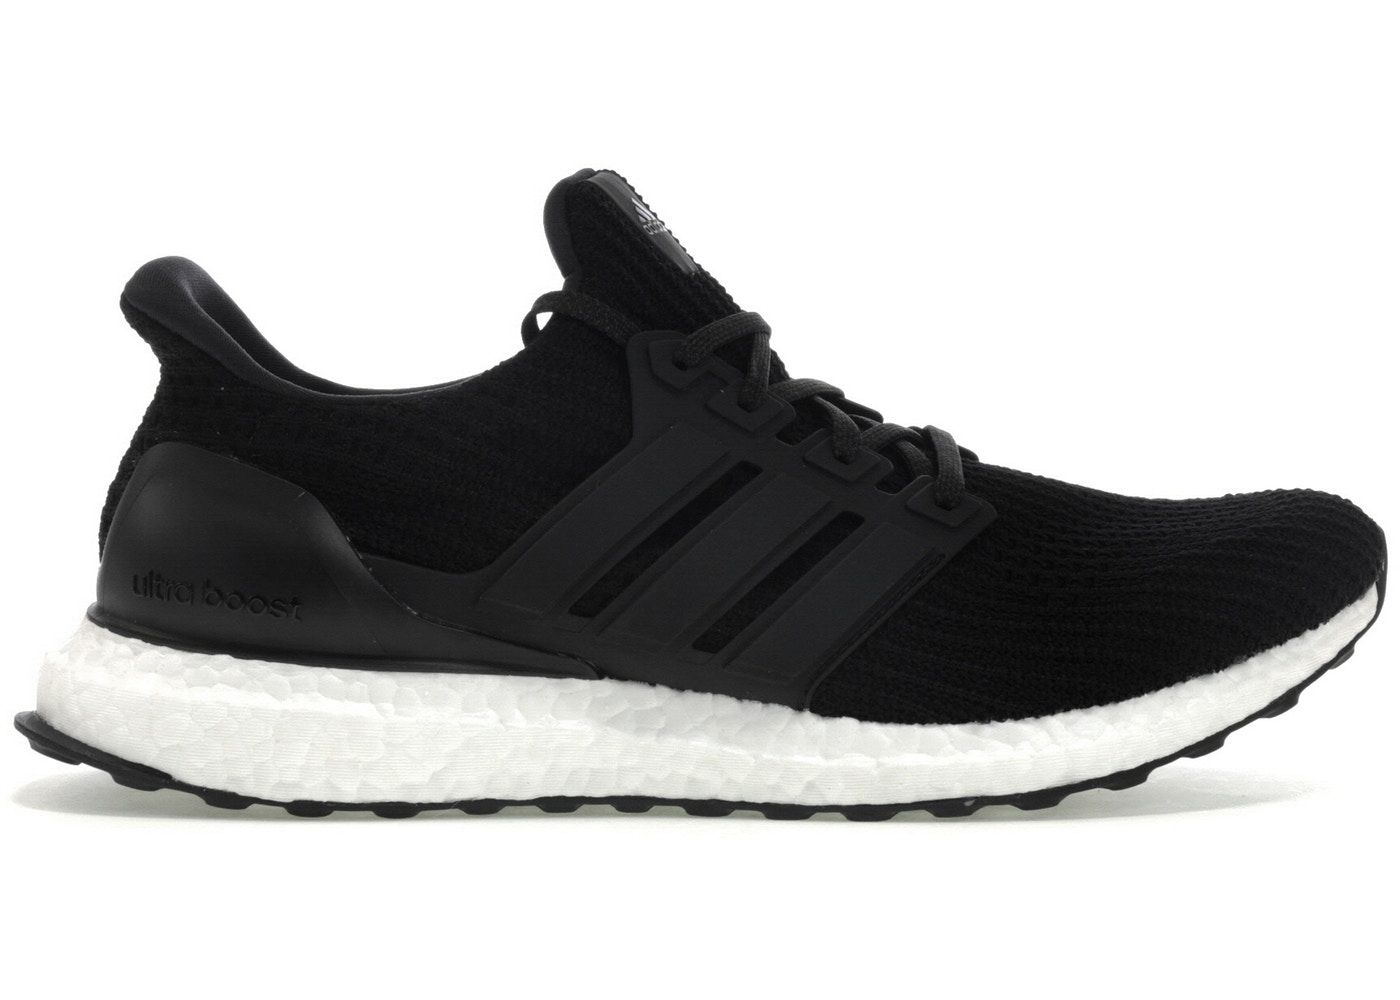 3f8e23f63e3bd Check out the adidas Ultra Boost 4.0 Core Black available on StockX